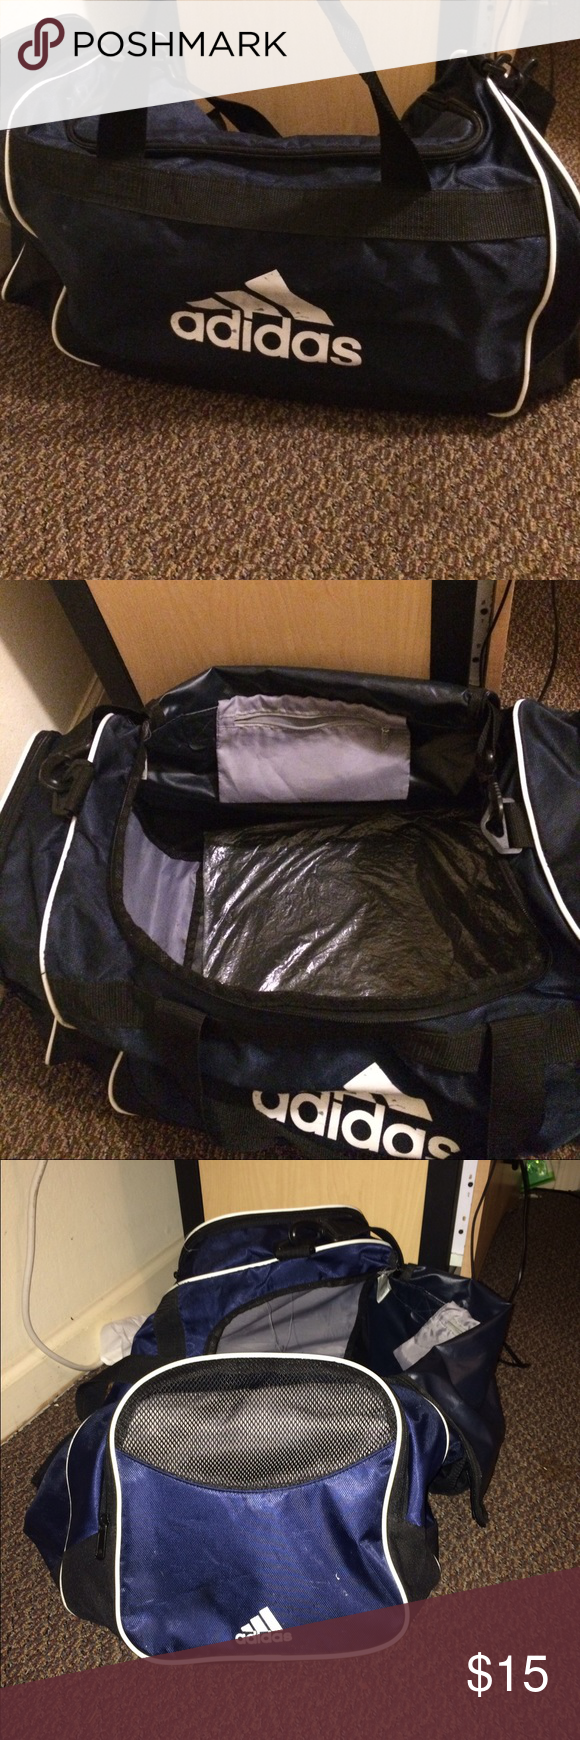 Adidas duffle bag Well loved duffle bag. It is in good condition with the inside free of stains, rips and also smell free! All zippers work and no tears on the handles and the plastic protective liner is still inside the bottom of the bag Adidas Bags Travel Bags